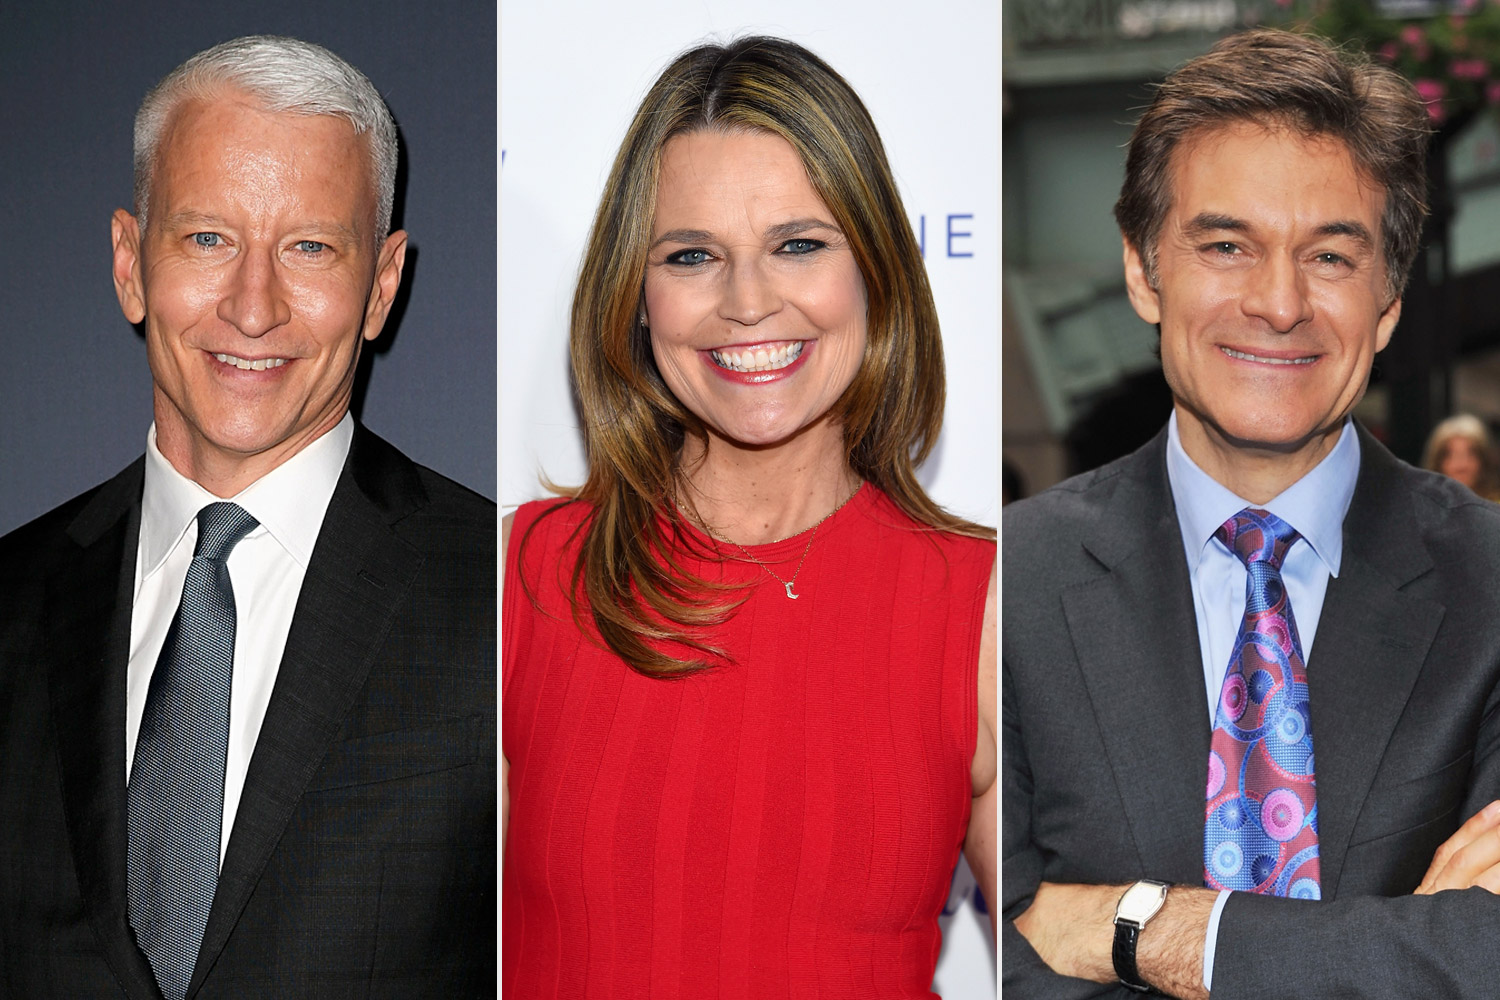 Savannah Guthrie, Anderson Cooper and Dr. Oz